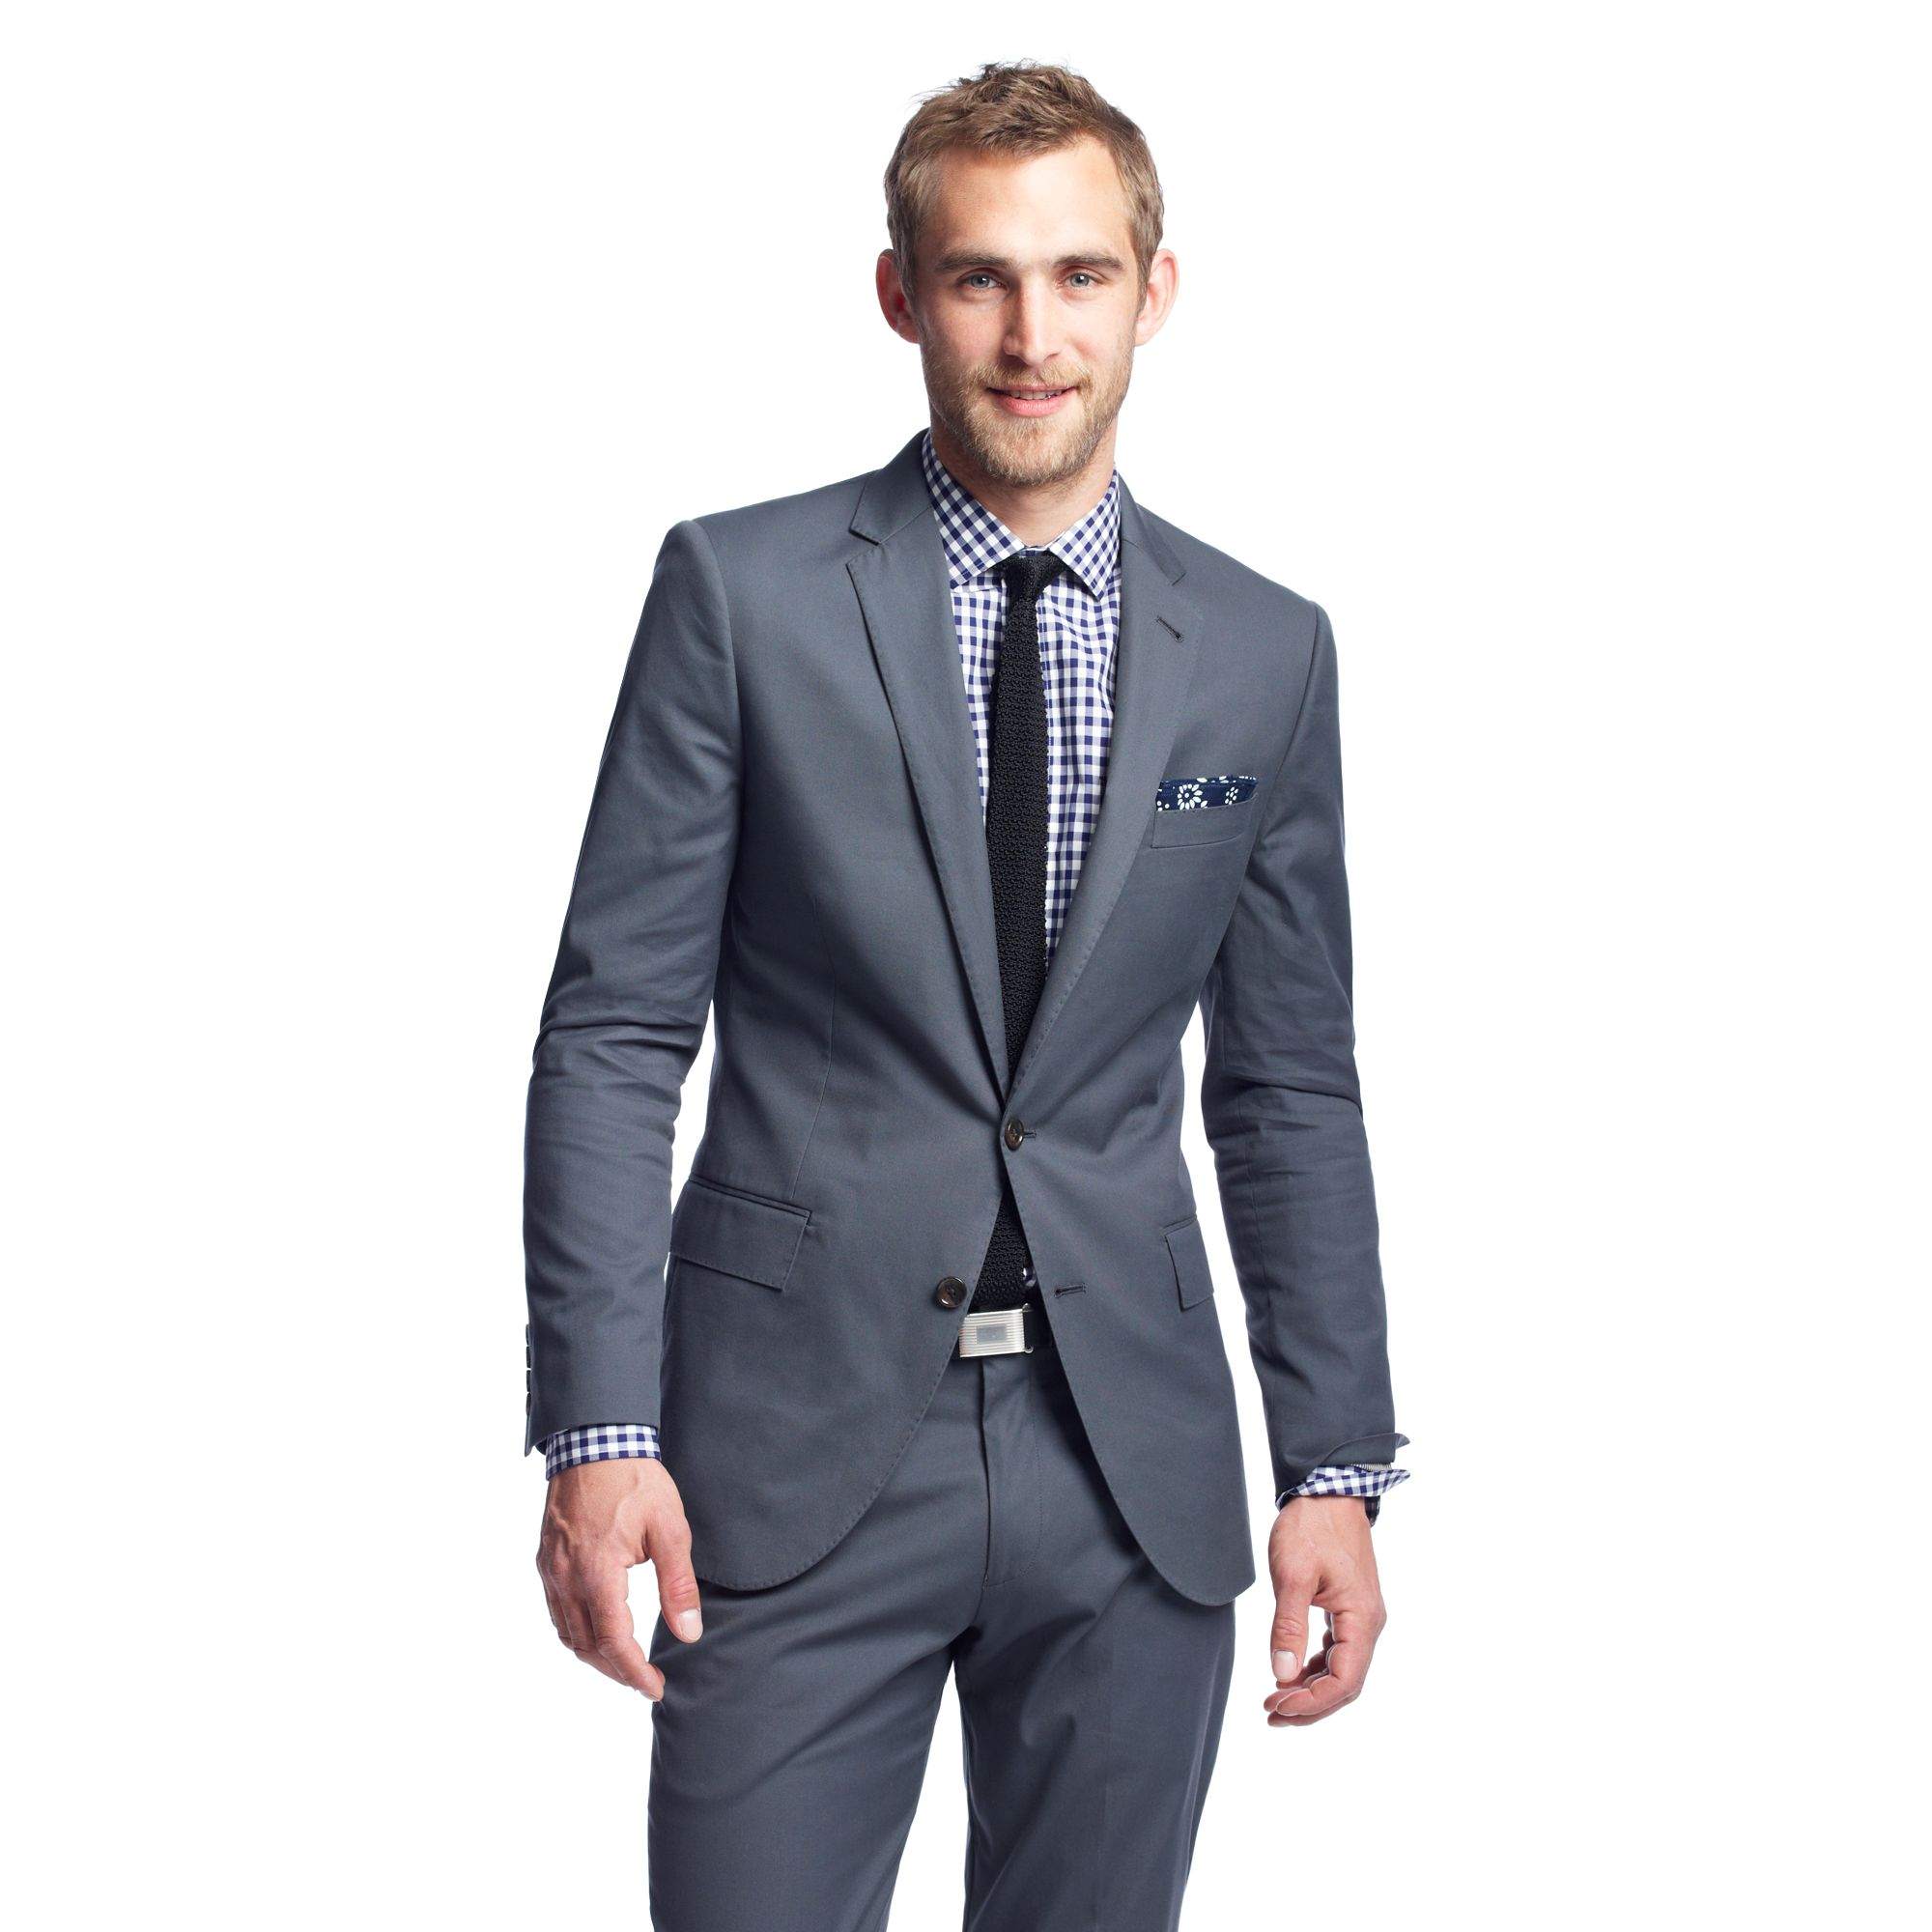 J.crew Ludlow Suit Jacket With Double Vent In Italian Cotton Piqué ...